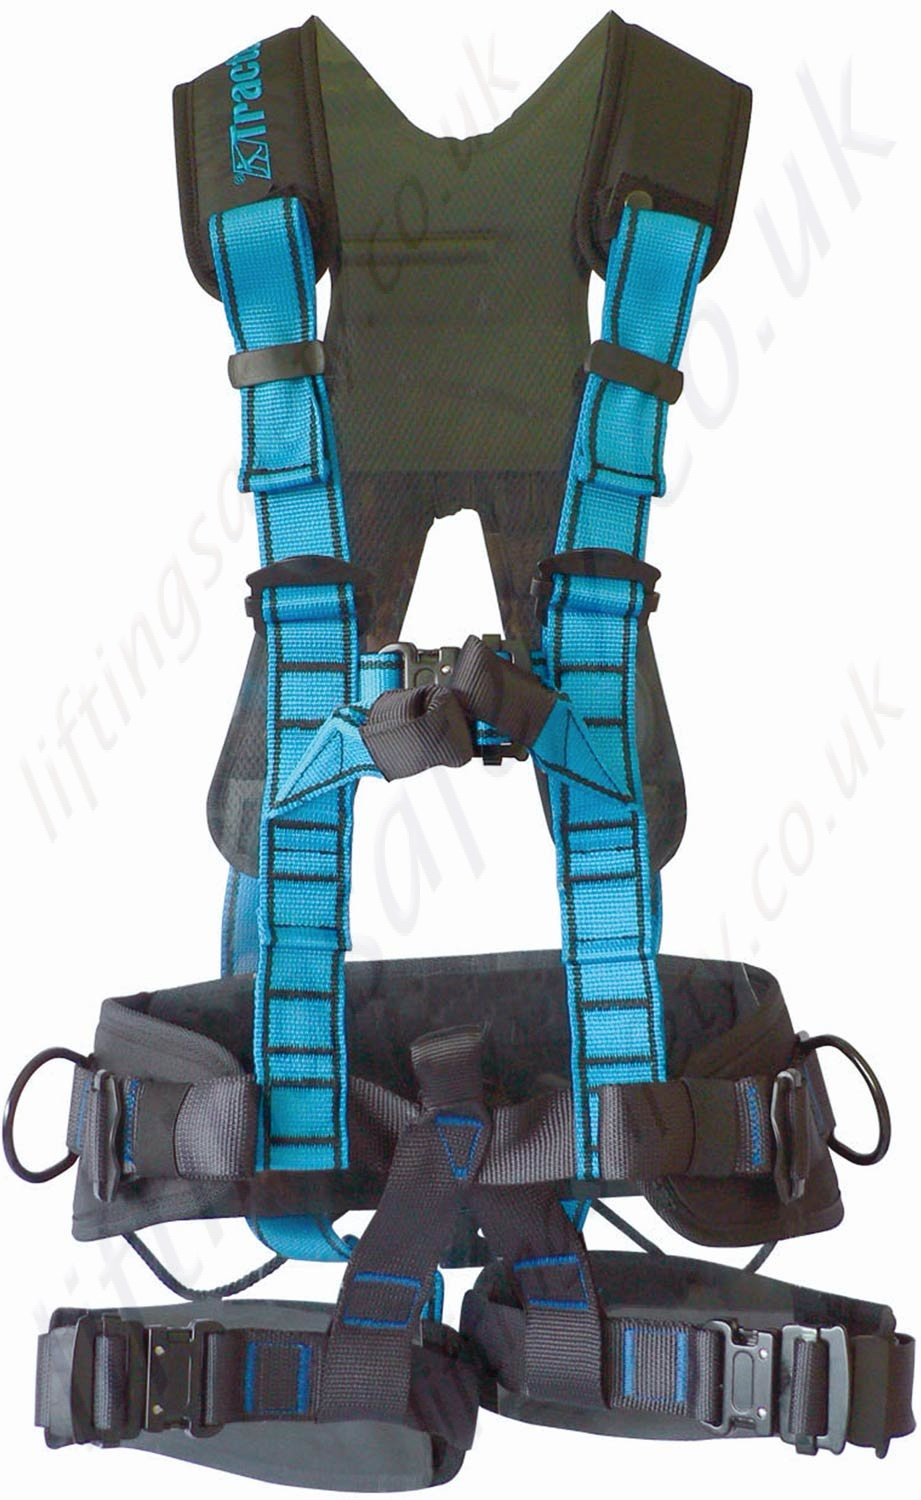 Front Connect Harness : Tractel quot ht promast point rope access harness with